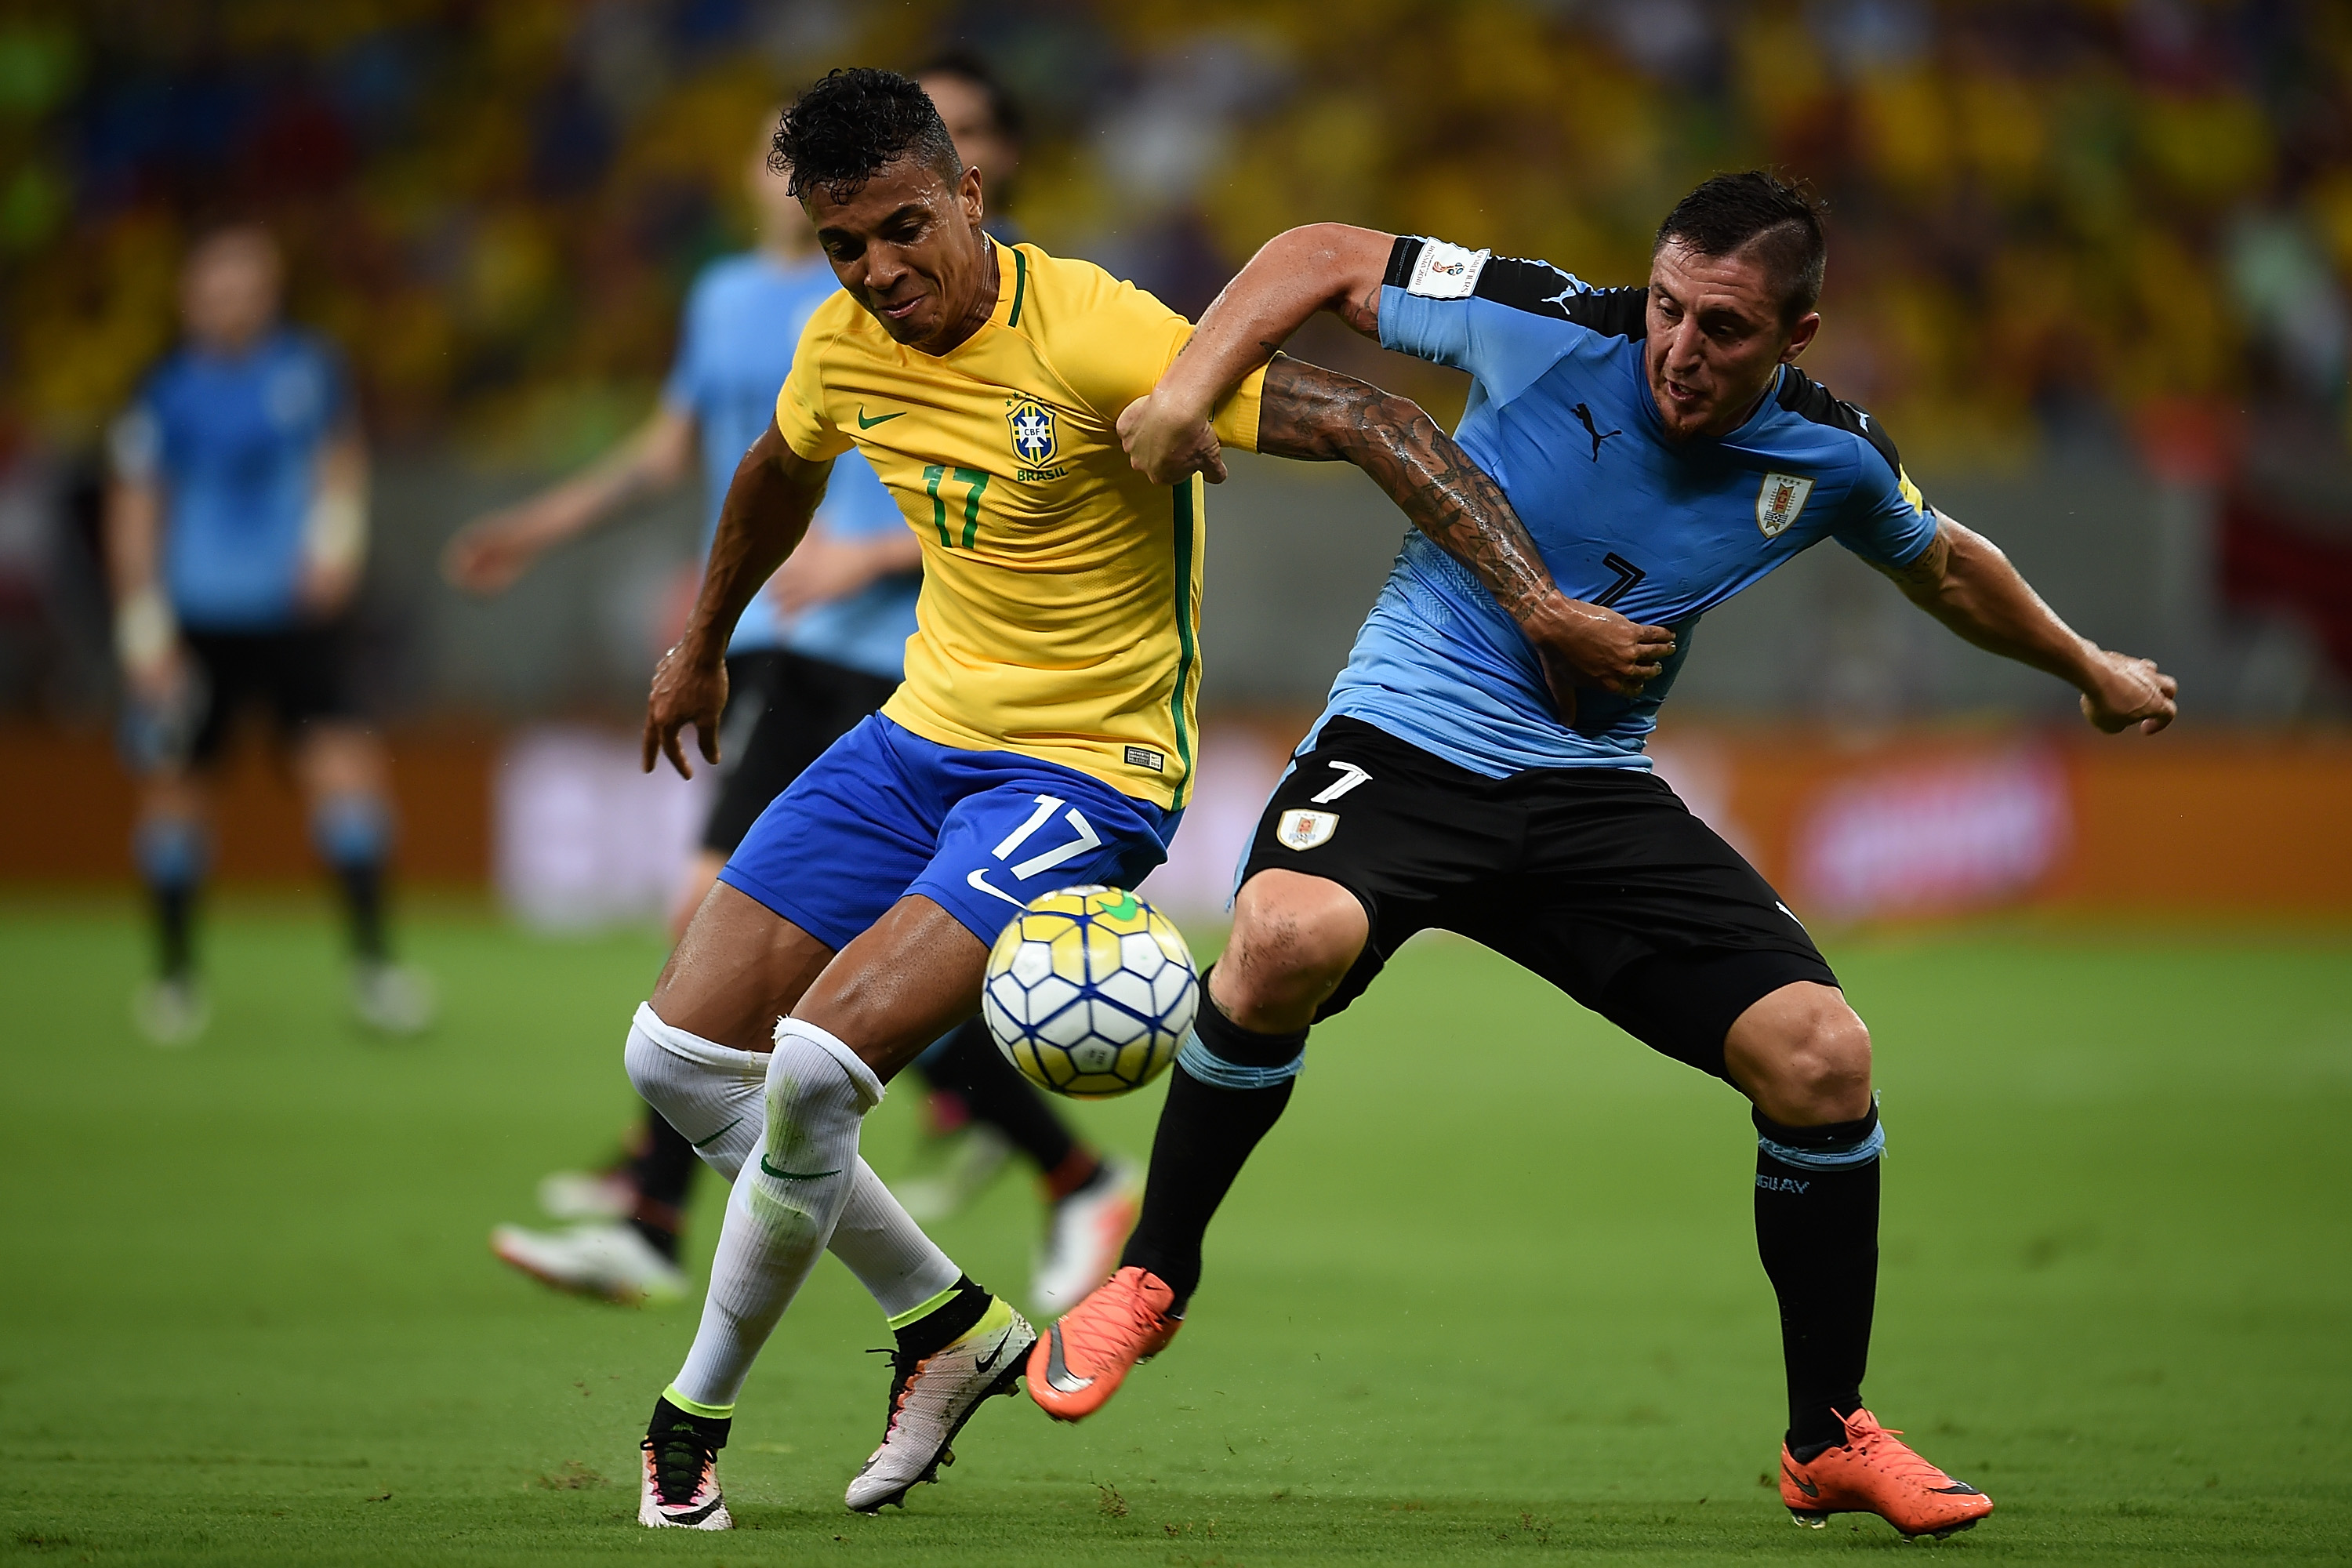 World cup prediction brazil vs argentina final showdown - 4 8